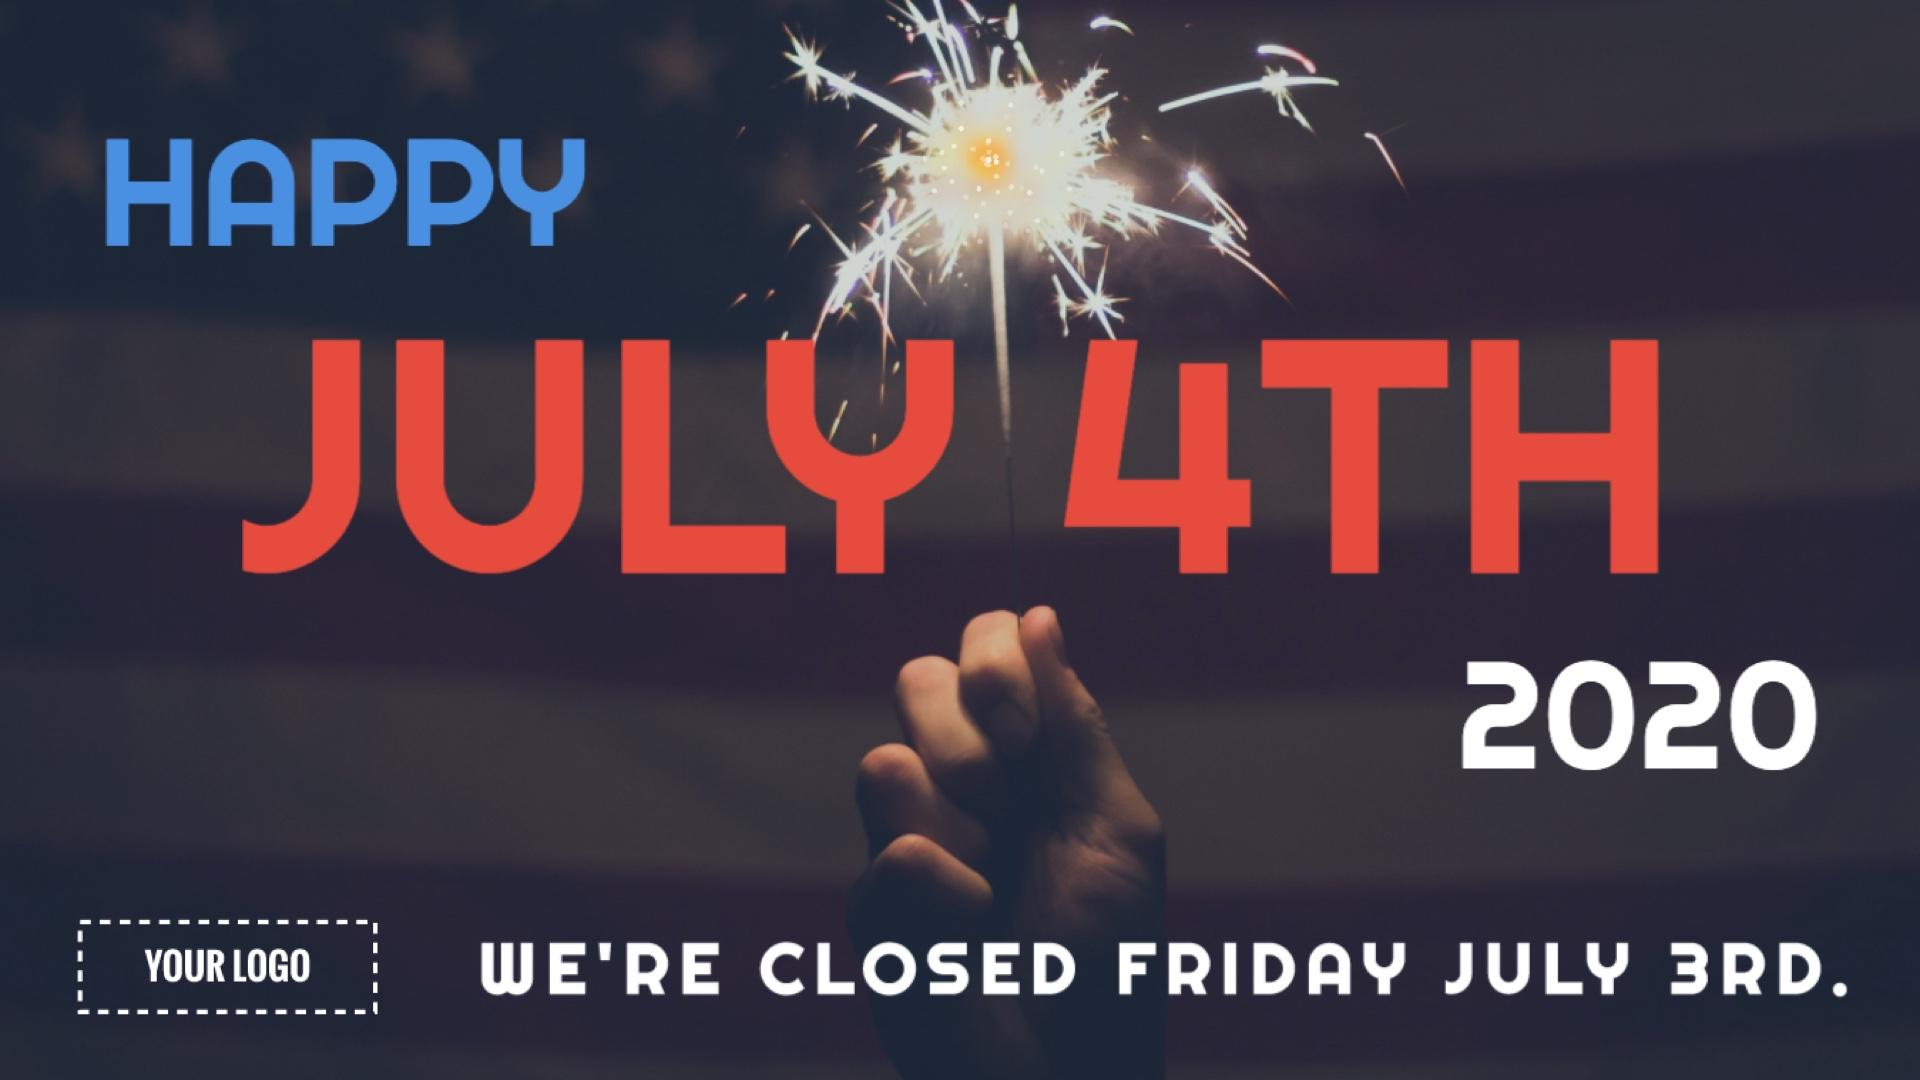 Holiday July 4th Digital Signage Template